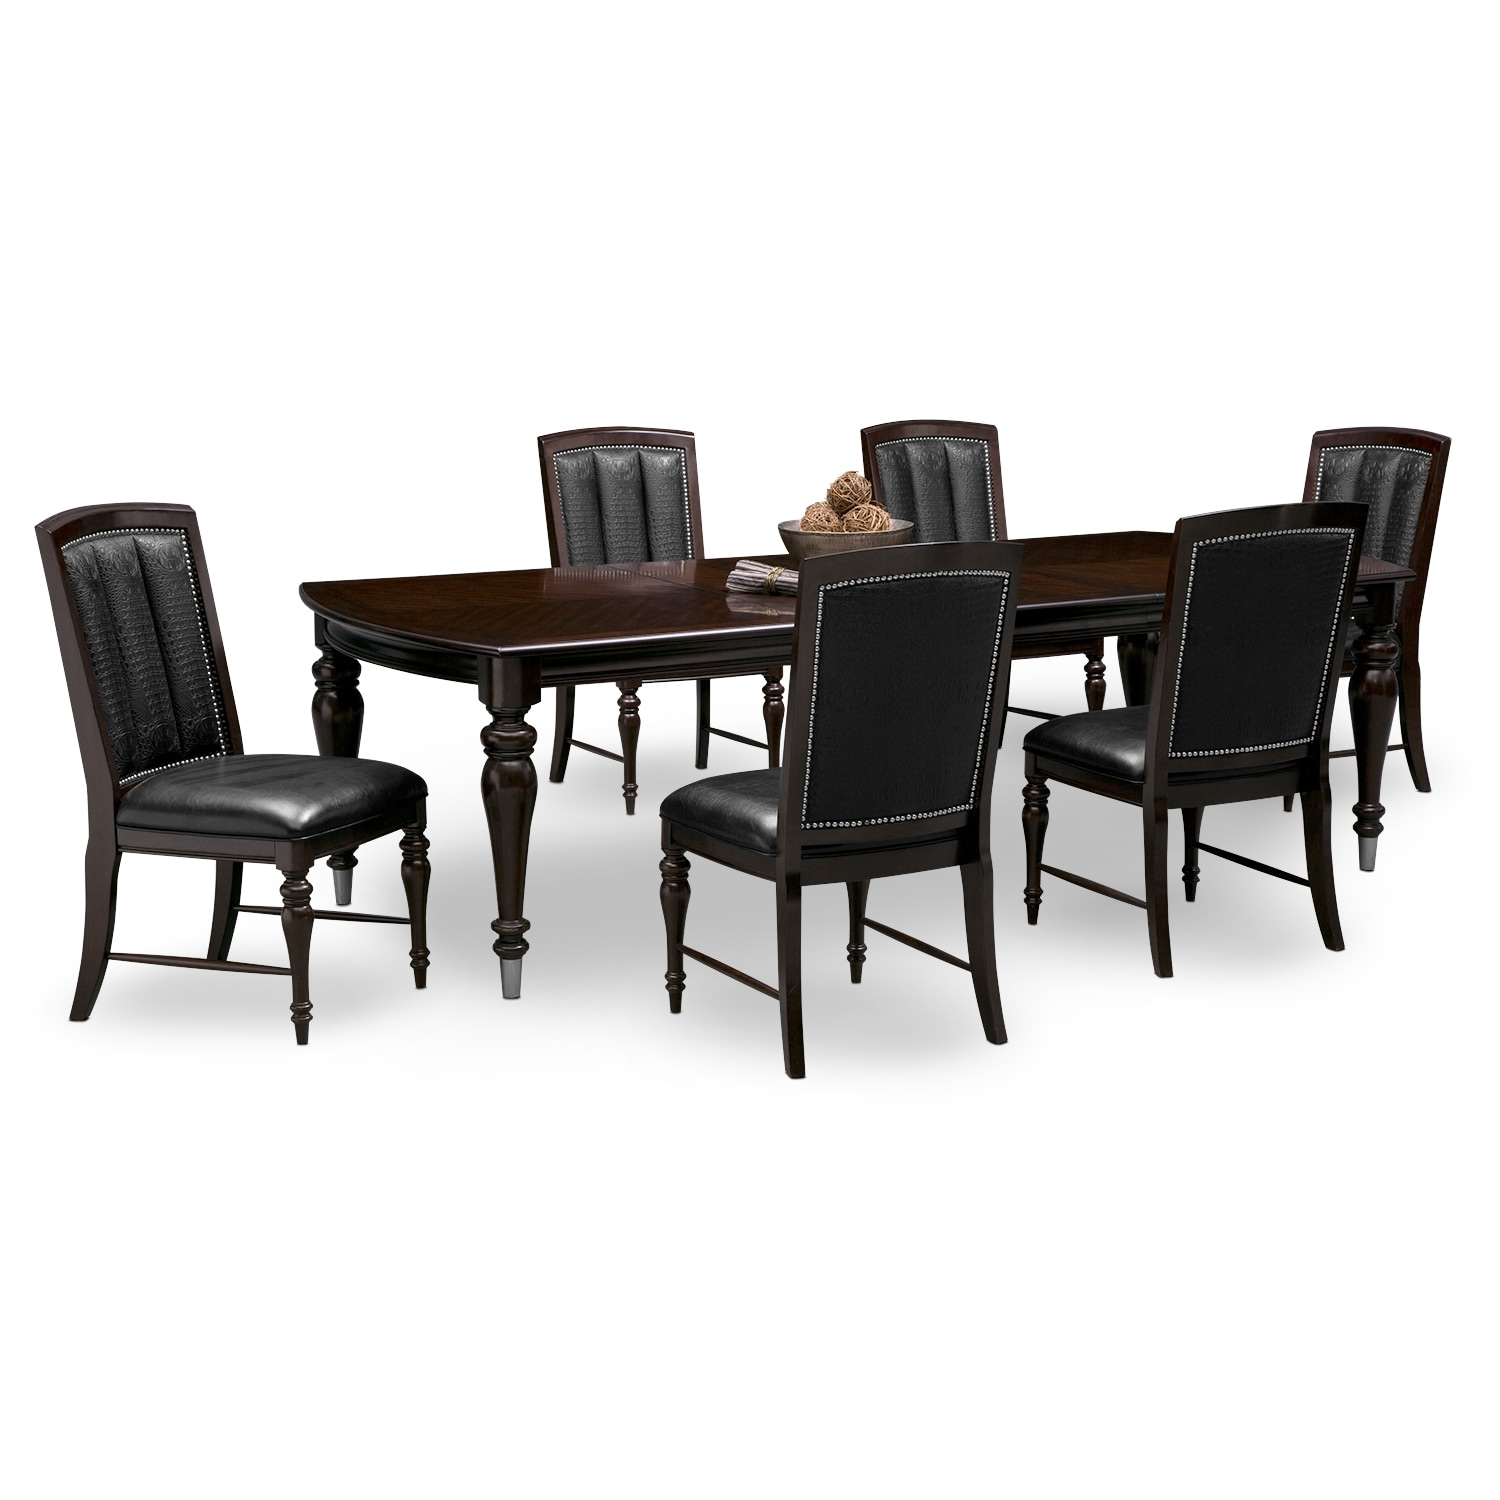 6 Dining Room Chairs Esquire Table And 6 Chairs Cherry American Signature